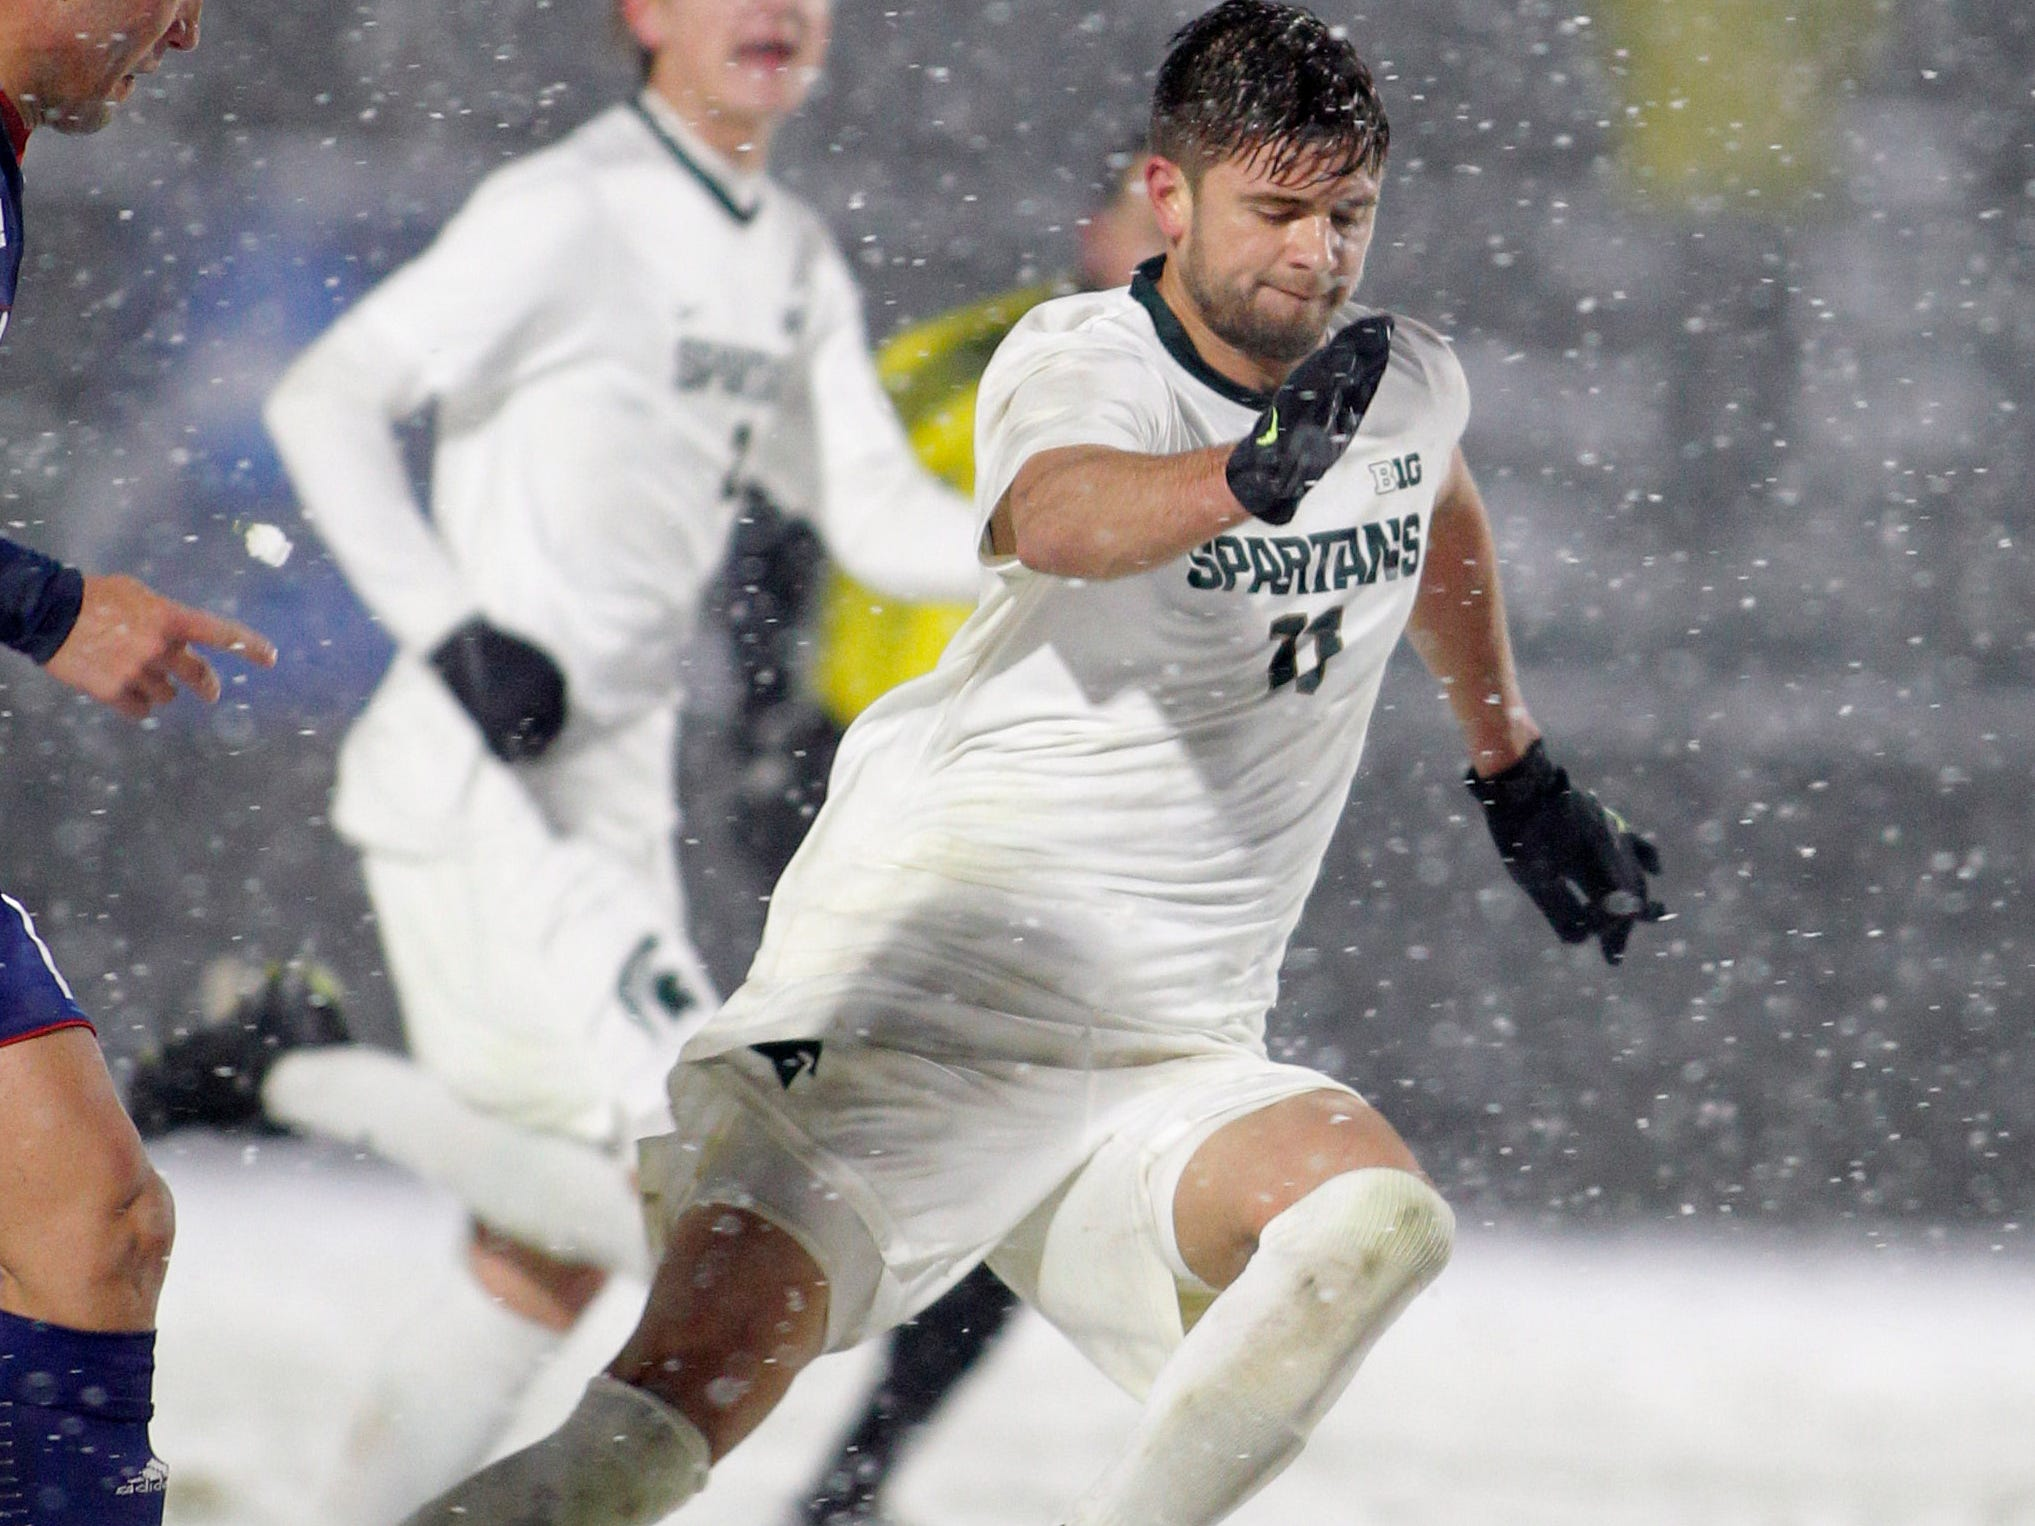 Michigan State's Ryan Sierakowski, right, pushes the ball against Illinois-Chicago during their NCAA first round game, Thursday, Nov. 15, 2018, at DeMartin Stadium in East Lansing, Mich. MSU won 2-0.